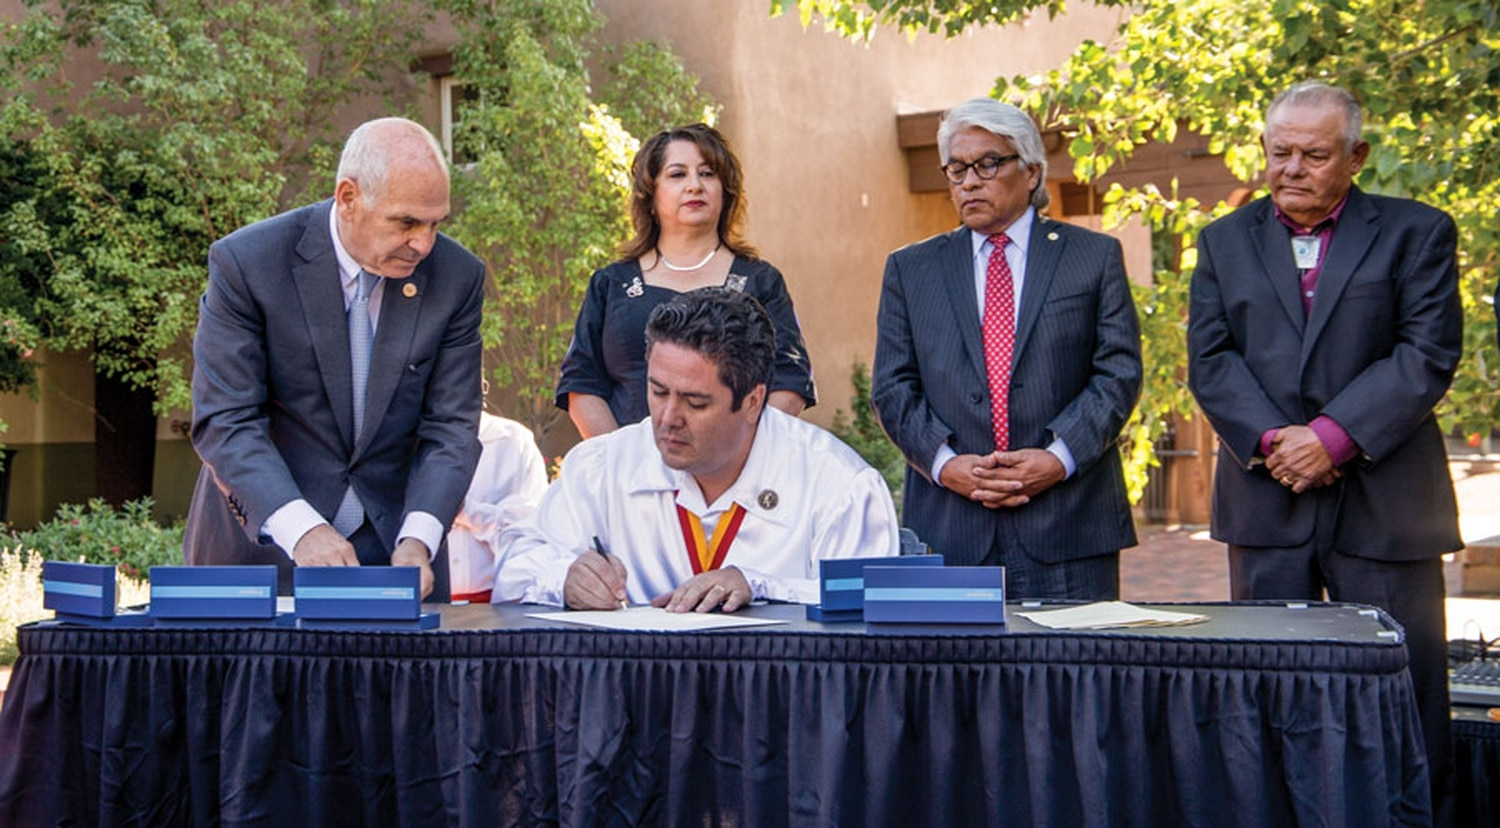 Webber watches as local Hispanic and Pueblo leaders sign a proclamation effectively ending the Entrada.